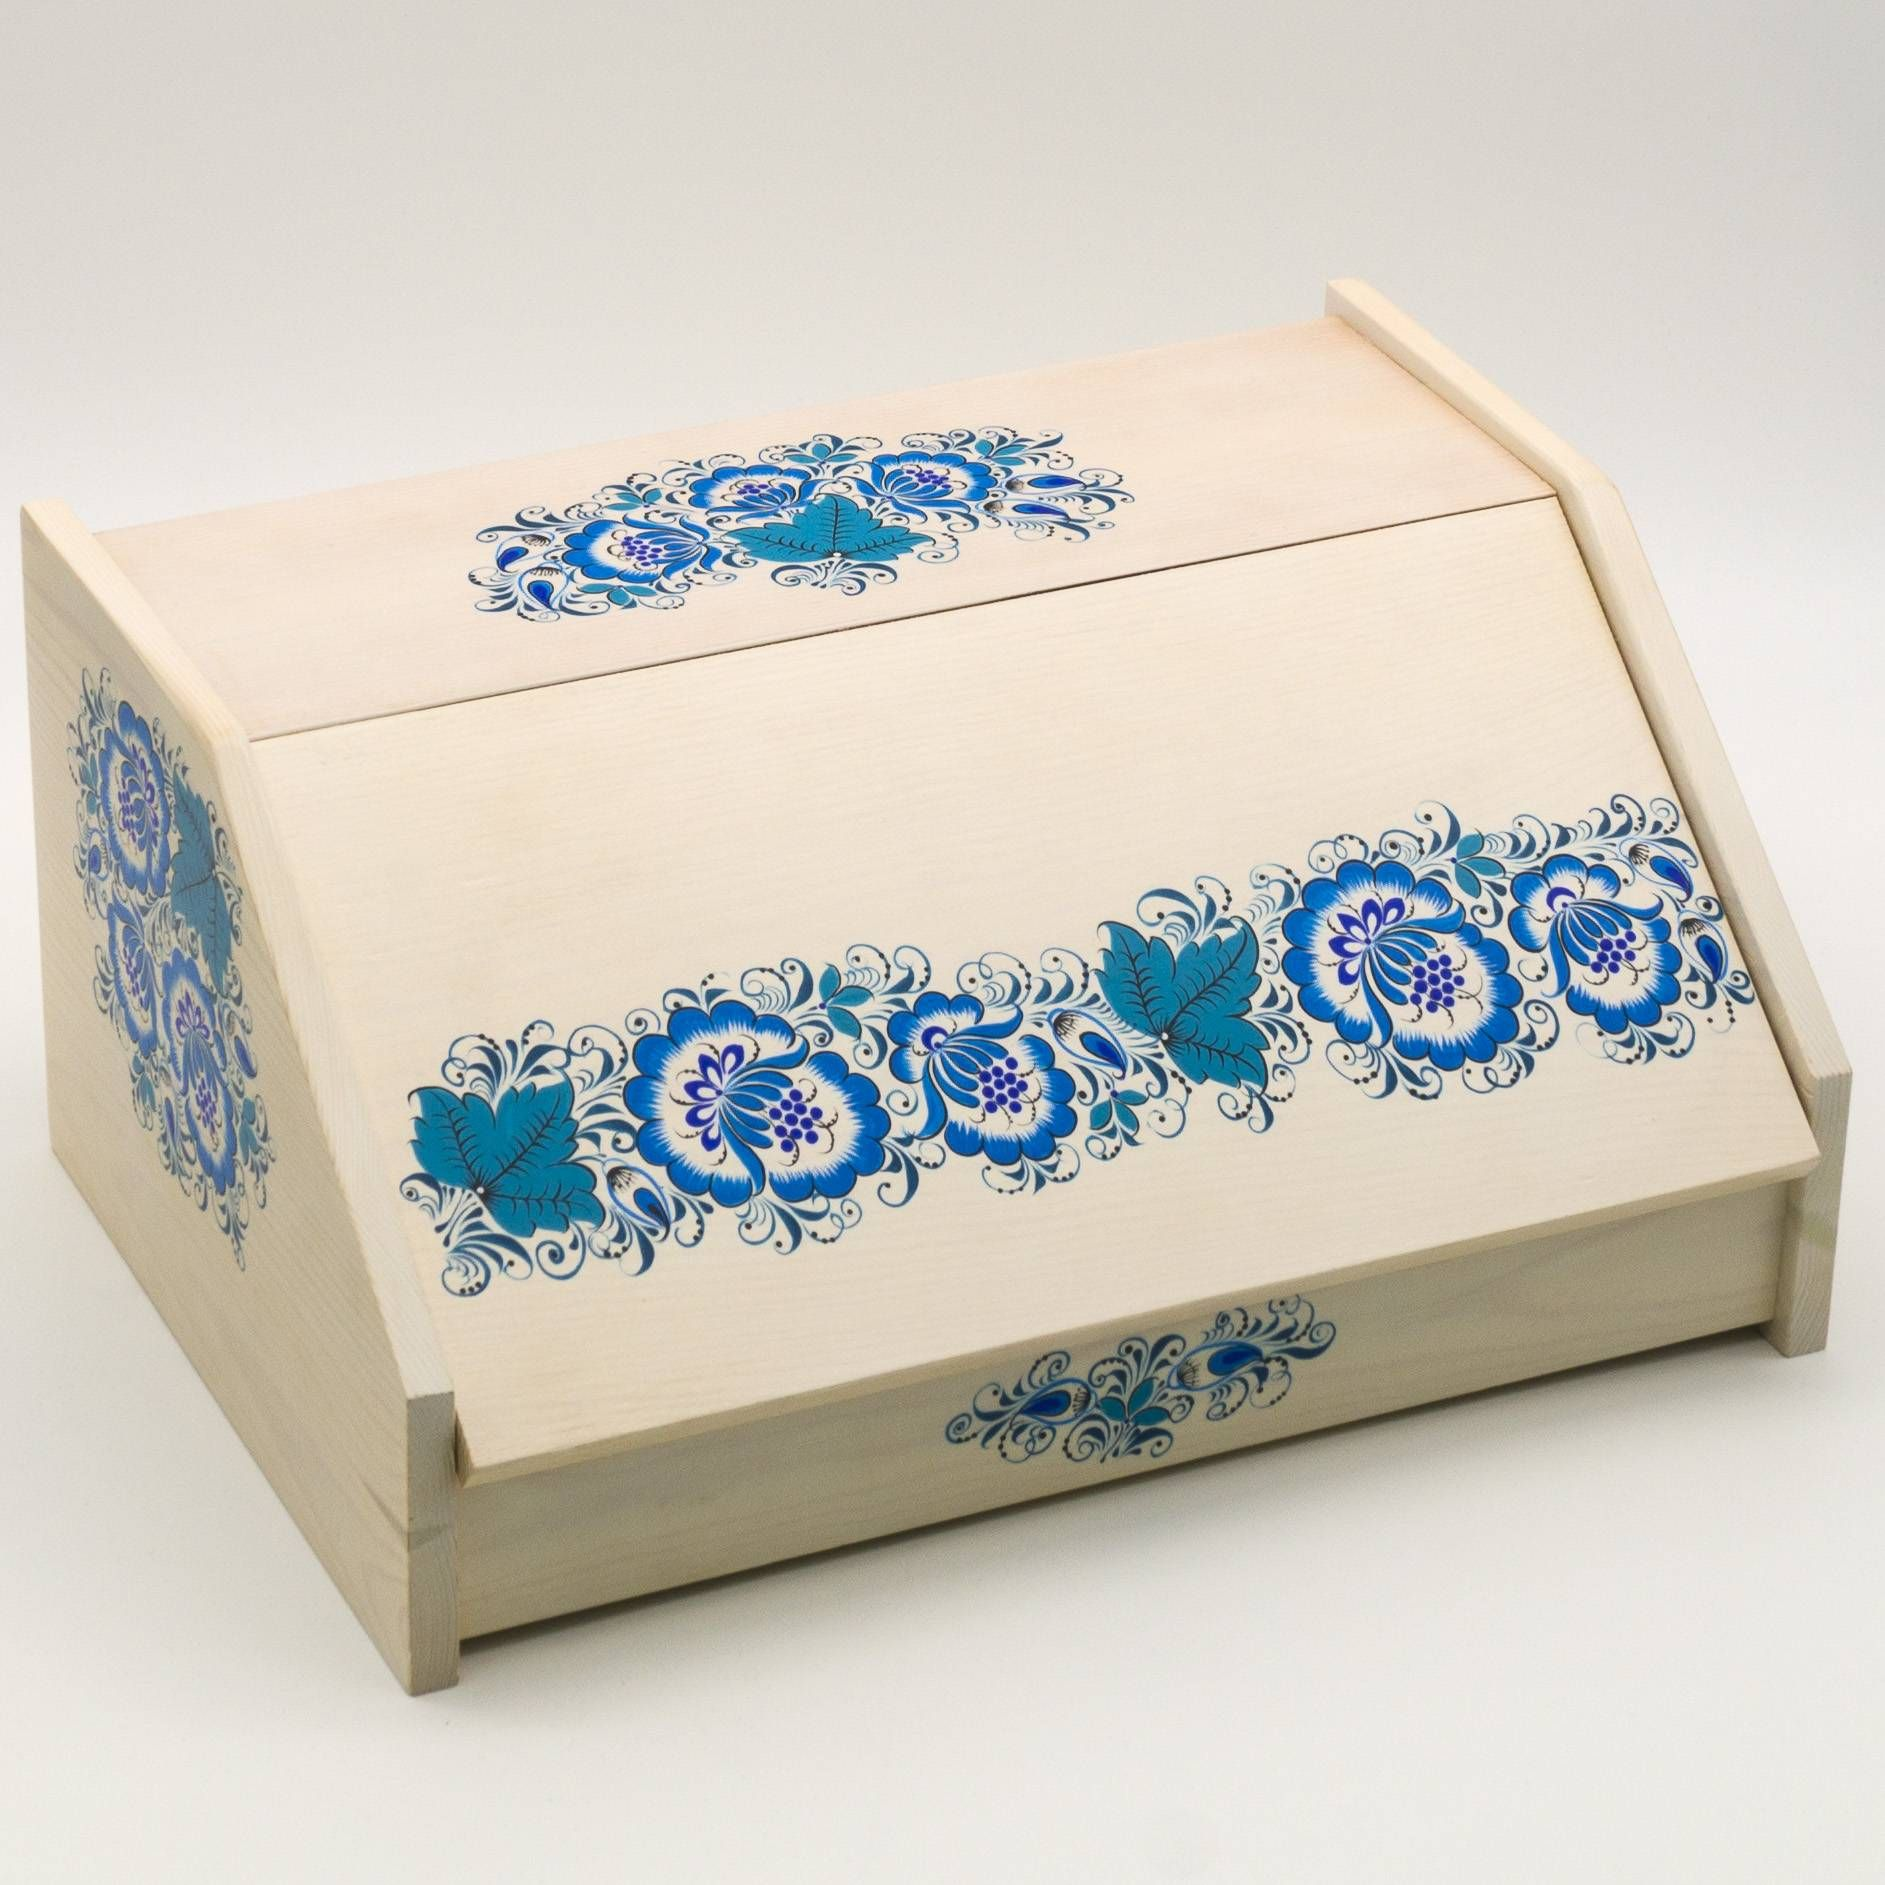 Craft / Bread box painting, khokhloma, wooden